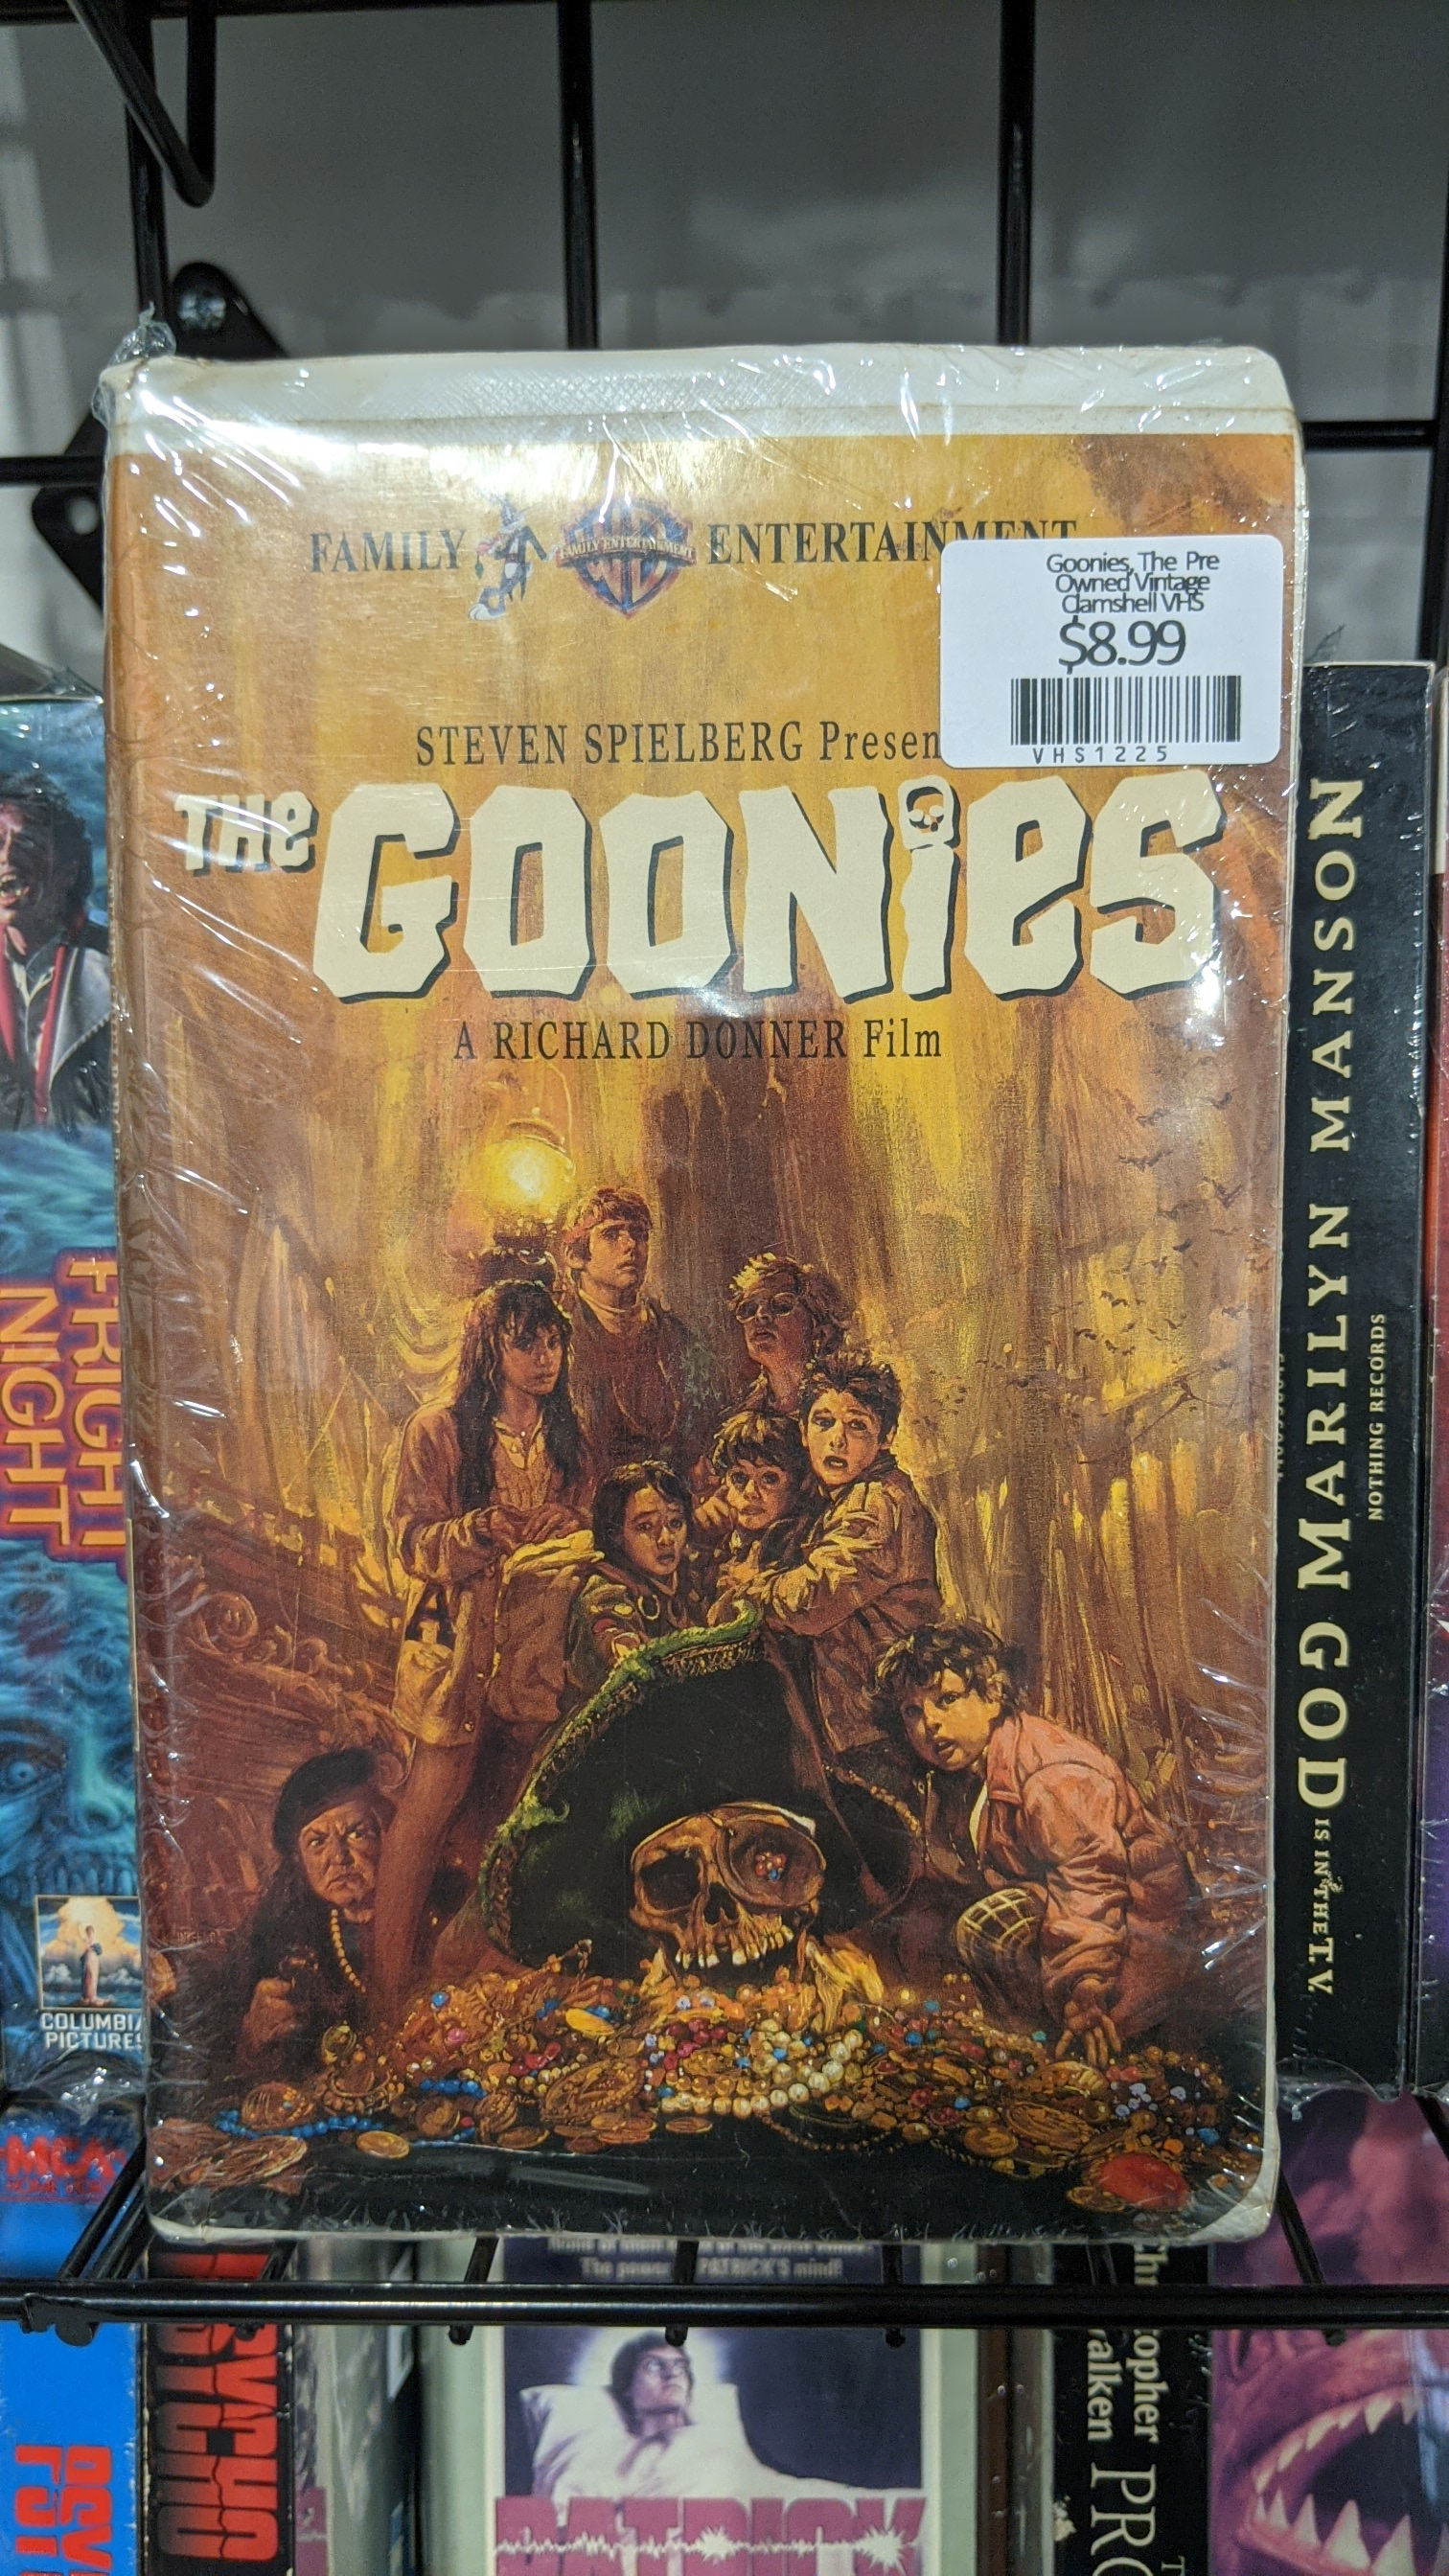 Goonies, The  Pre Owned Vintage Clamshell VHS